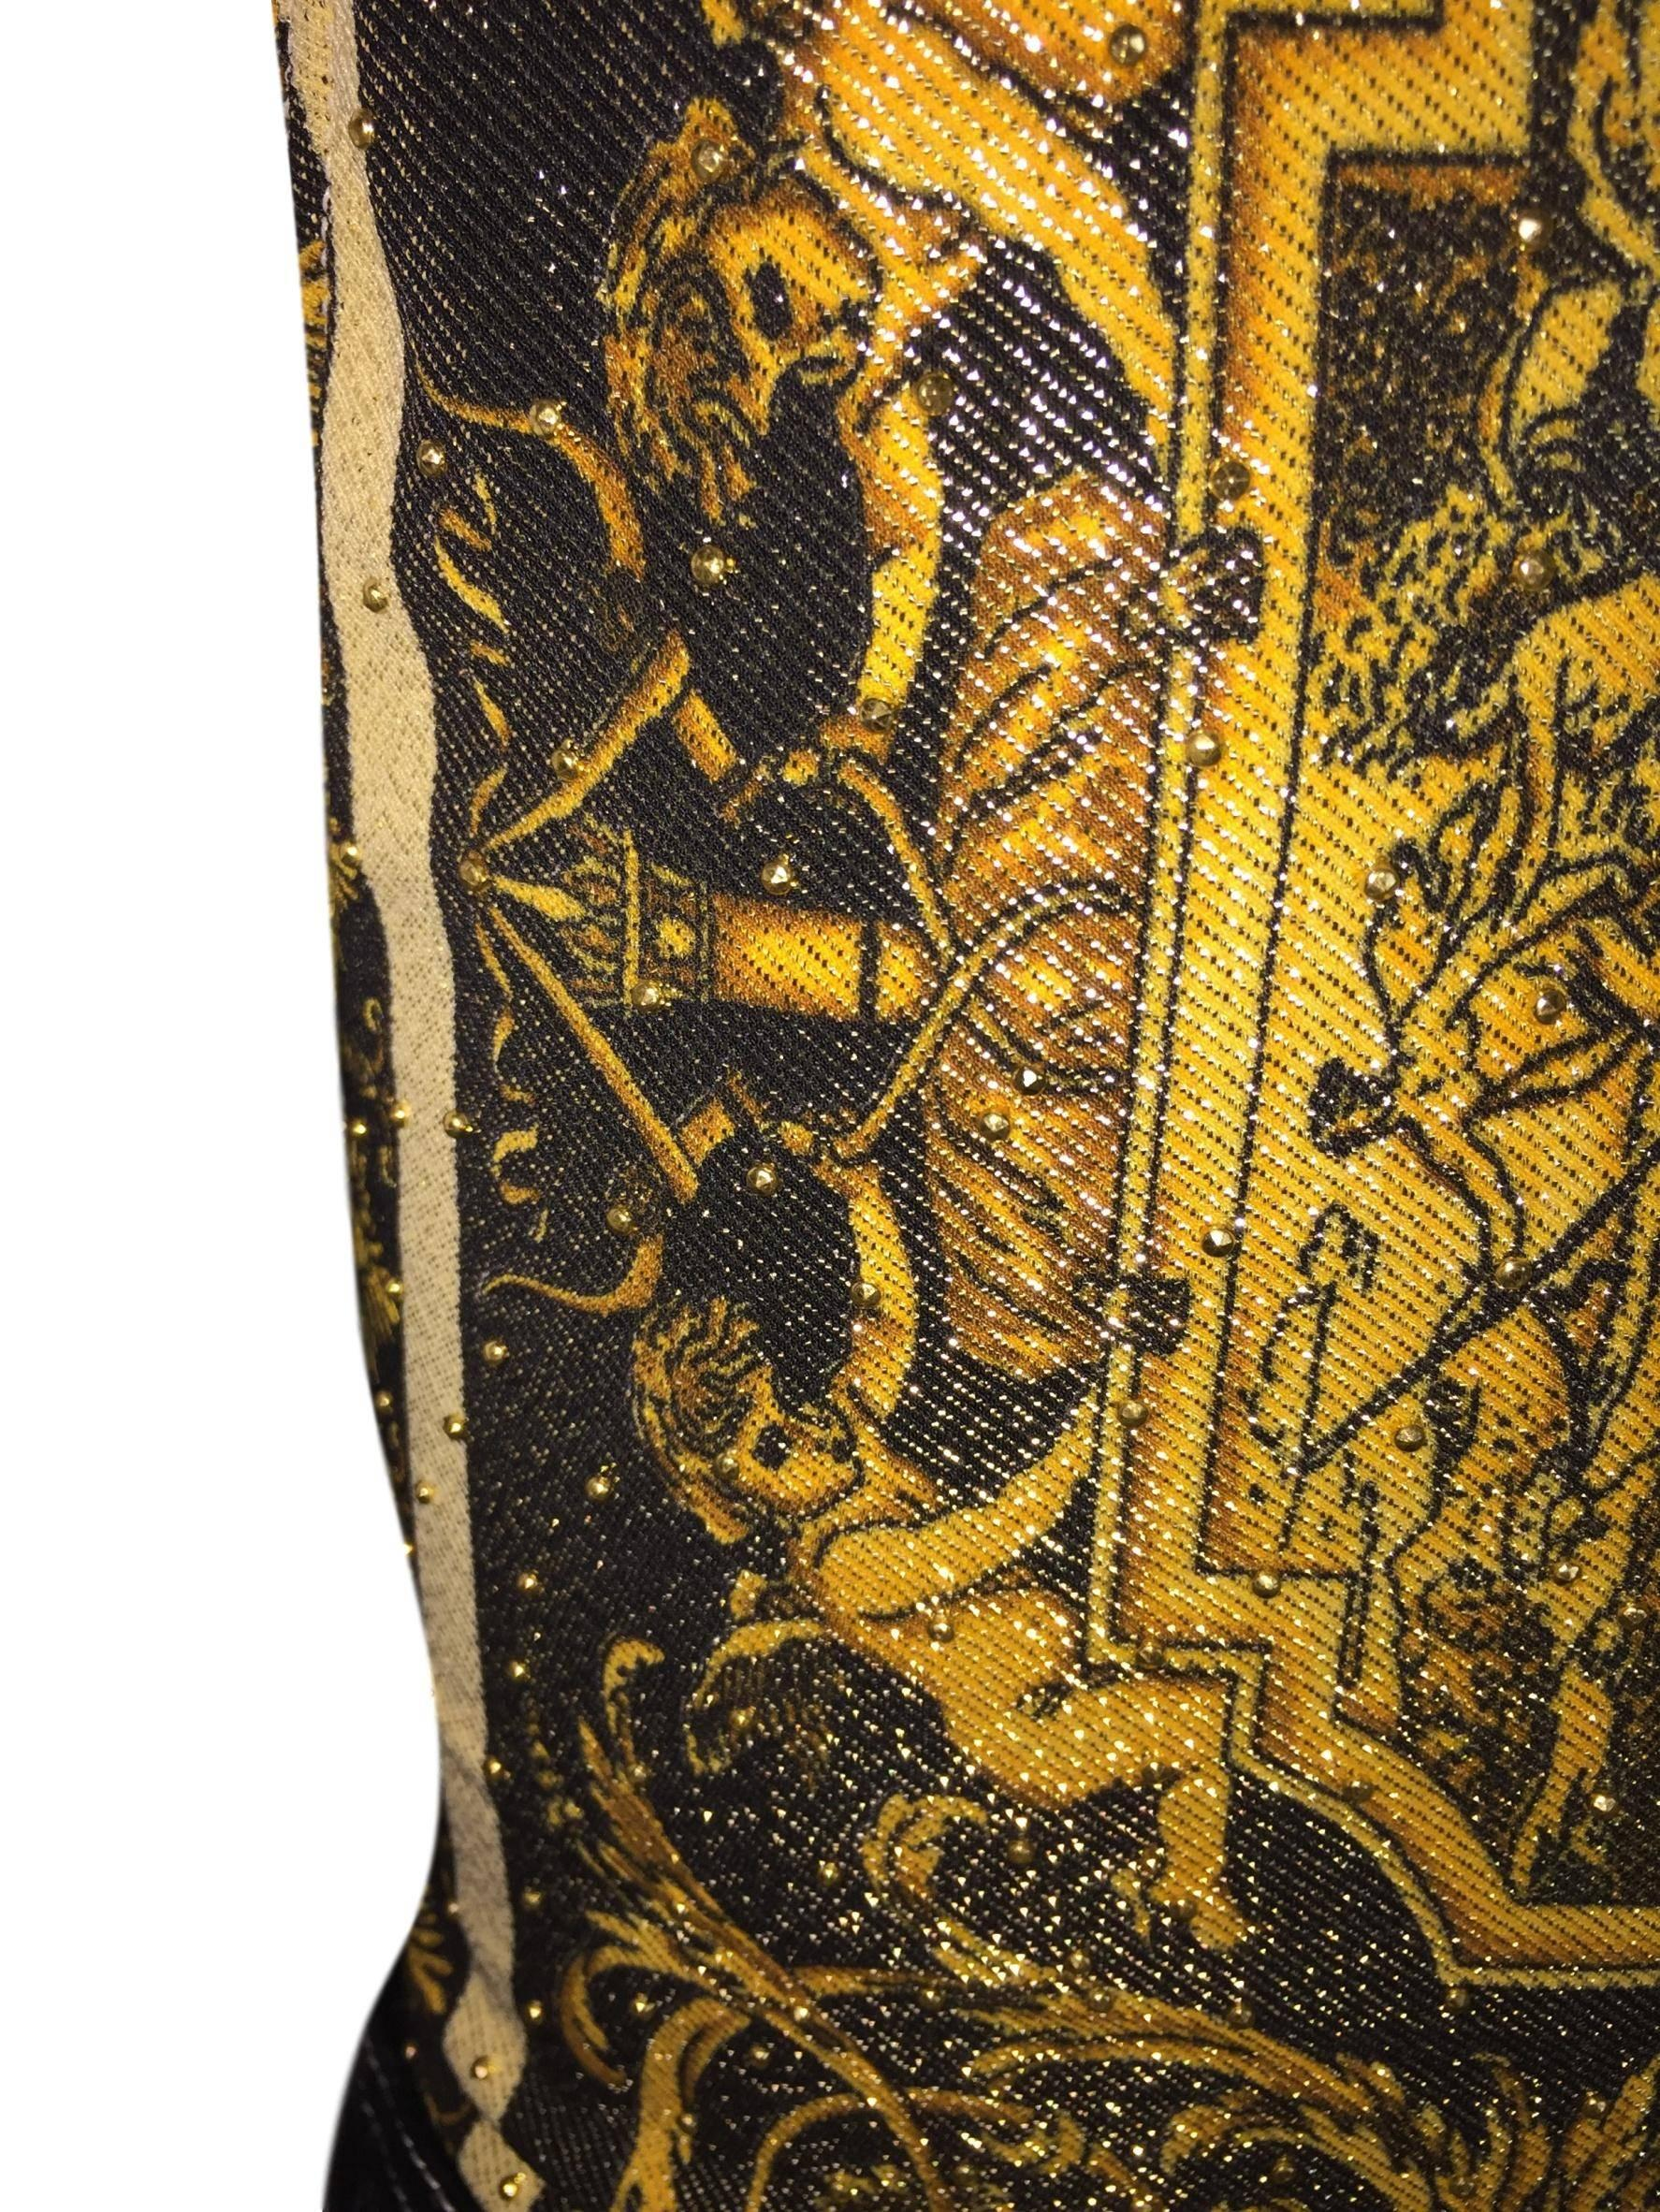 S S 1992 Gianni Versace Atelier Print Gold Studded Baroque Top For Sale at  1stdibs 5d0584598